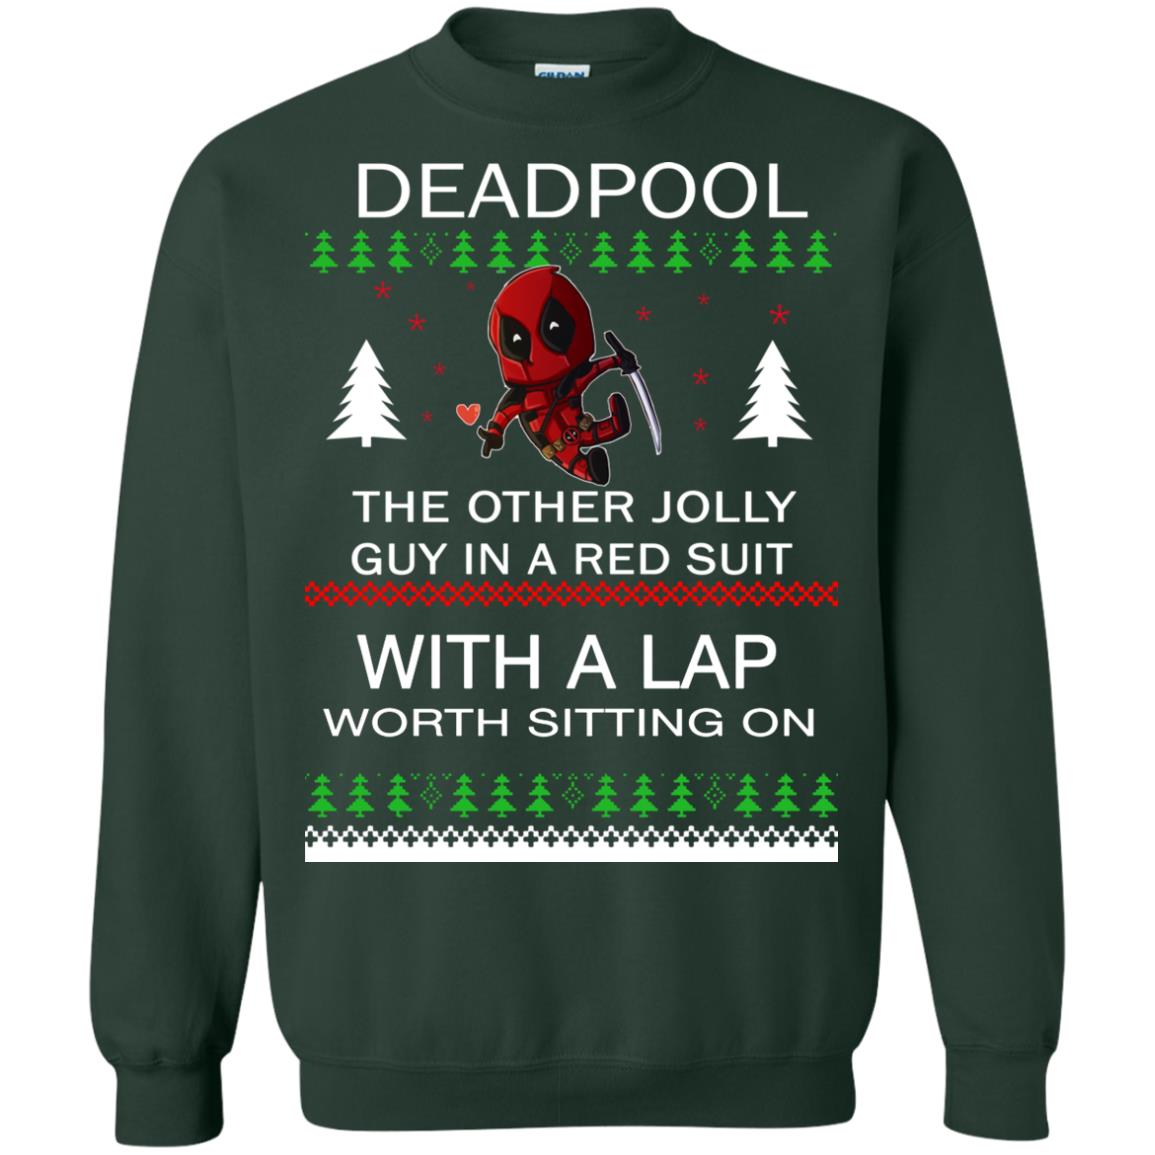 image 2838 - Deadpool The only jolly guy in a red suit with a Lap Christmas Sweater, Ugly Sweatshirts